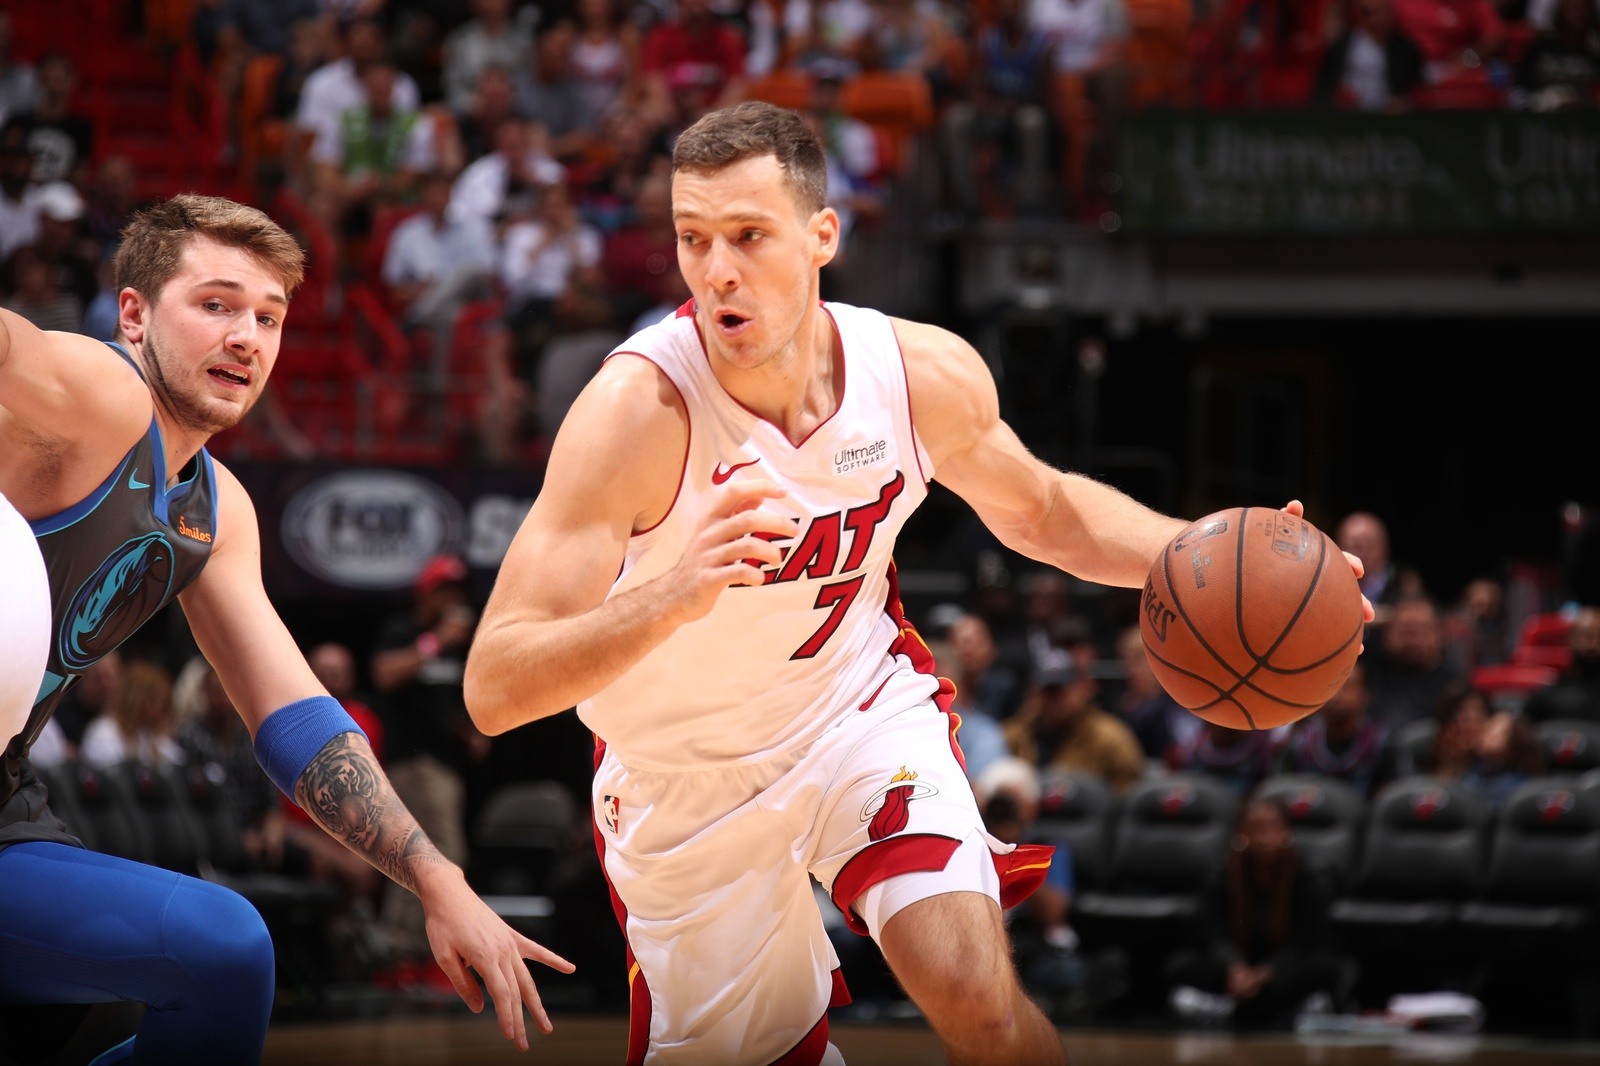 Goran Dragic #7 of the Miami Heat drives to the basket against the Dallas Mavericks on March 28, 2019 at American Airlines Arena in Miami, Florida.